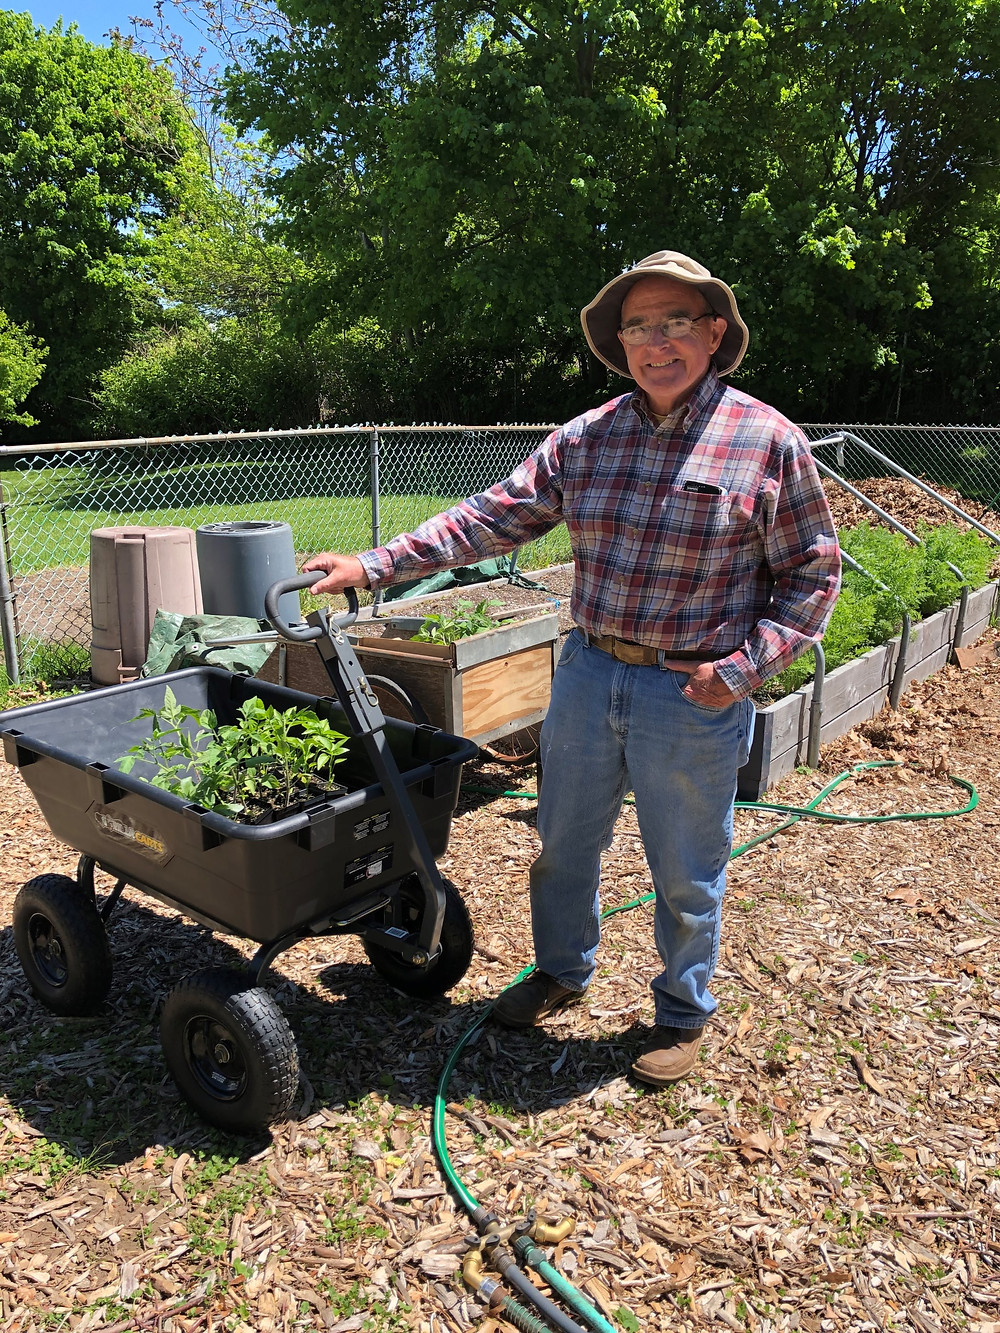 Gene Renz, Head Gardener of the Pawcatuck Neighborhood Center (PNC), graciously accepting the new garden cart and seedlings given by ECCGA! The PNC grows hundreds of pounds of fresh produce yearly that is available free of charge at PNC's food bank.